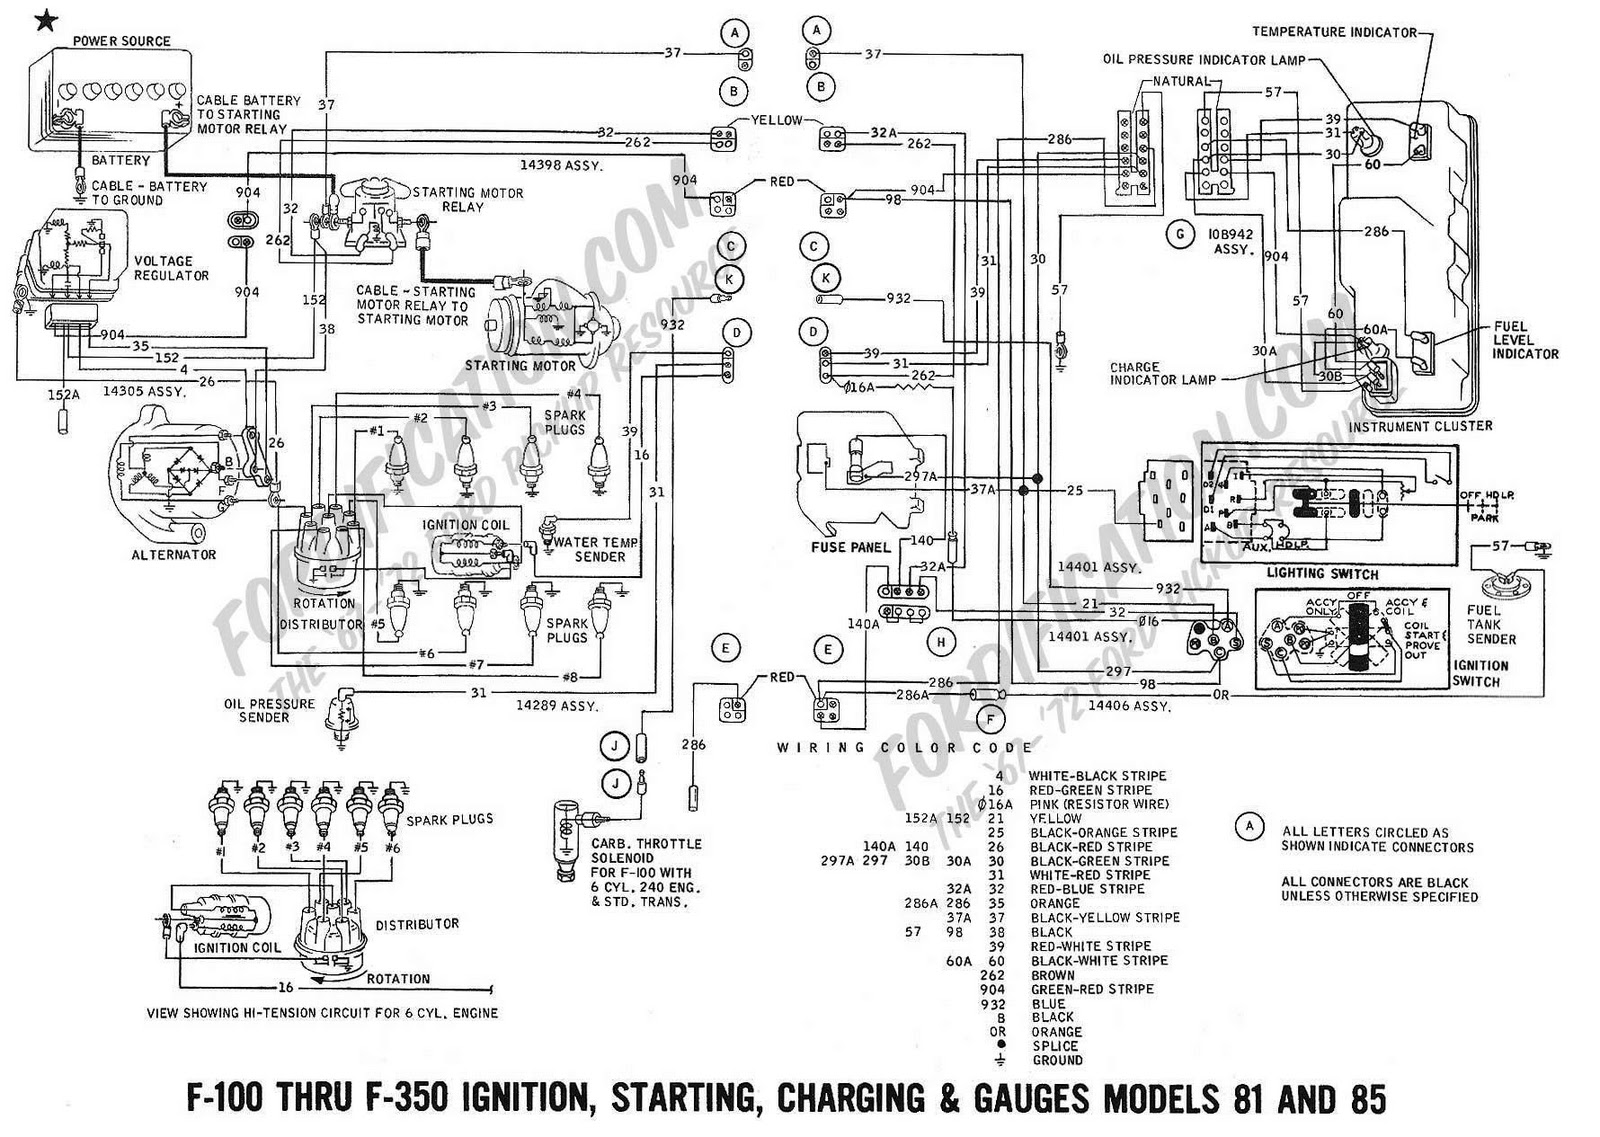 67 f100 ignition wiring auto electrical wiring diagram u2022 rh 6weeks co uk 61 f100 wiring diagram Ford Truck Wiring Diagrams